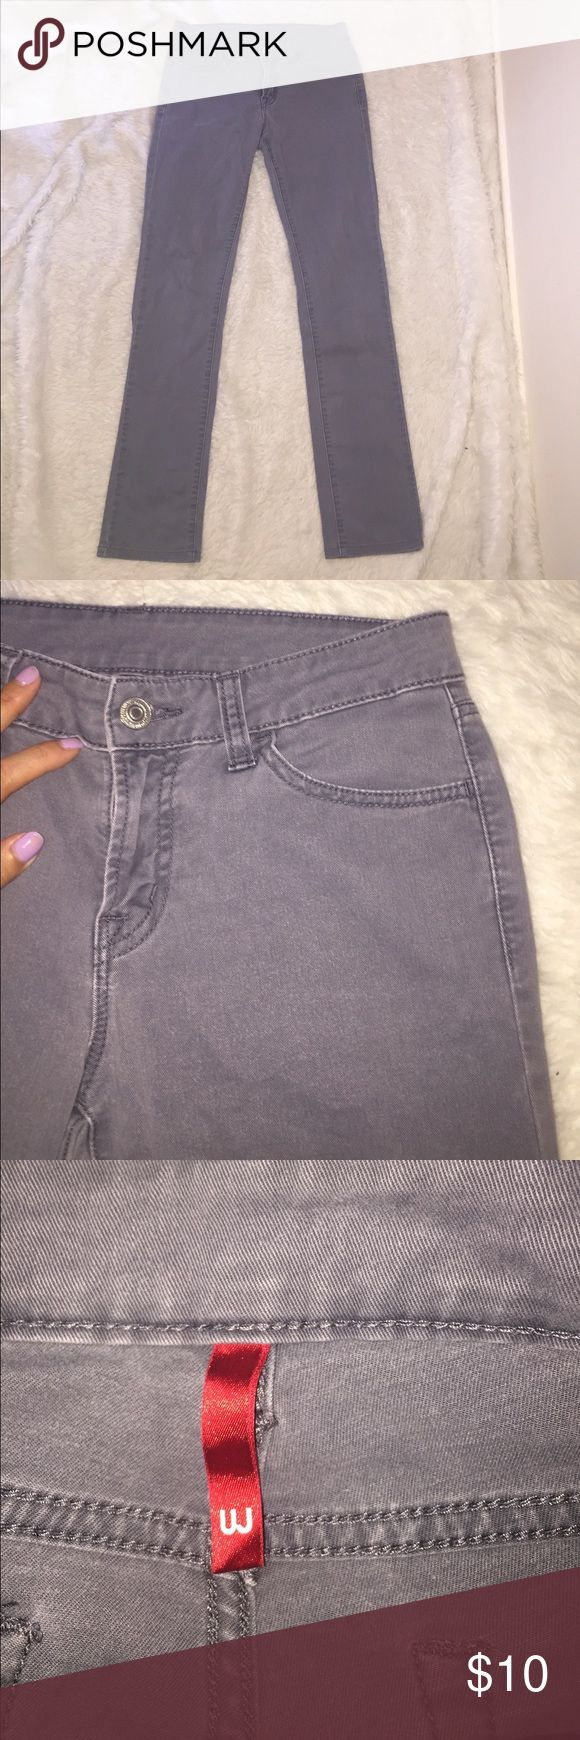 """Uniqlo gray jeans Uniqlo jeans the new standard for jeans. With design, quality, and value to bring fresh surprise and delight to people world wide/ Jean innovation from Japan. Inseam 28"""" rise 8.5"""" Uniqlo Jeans"""